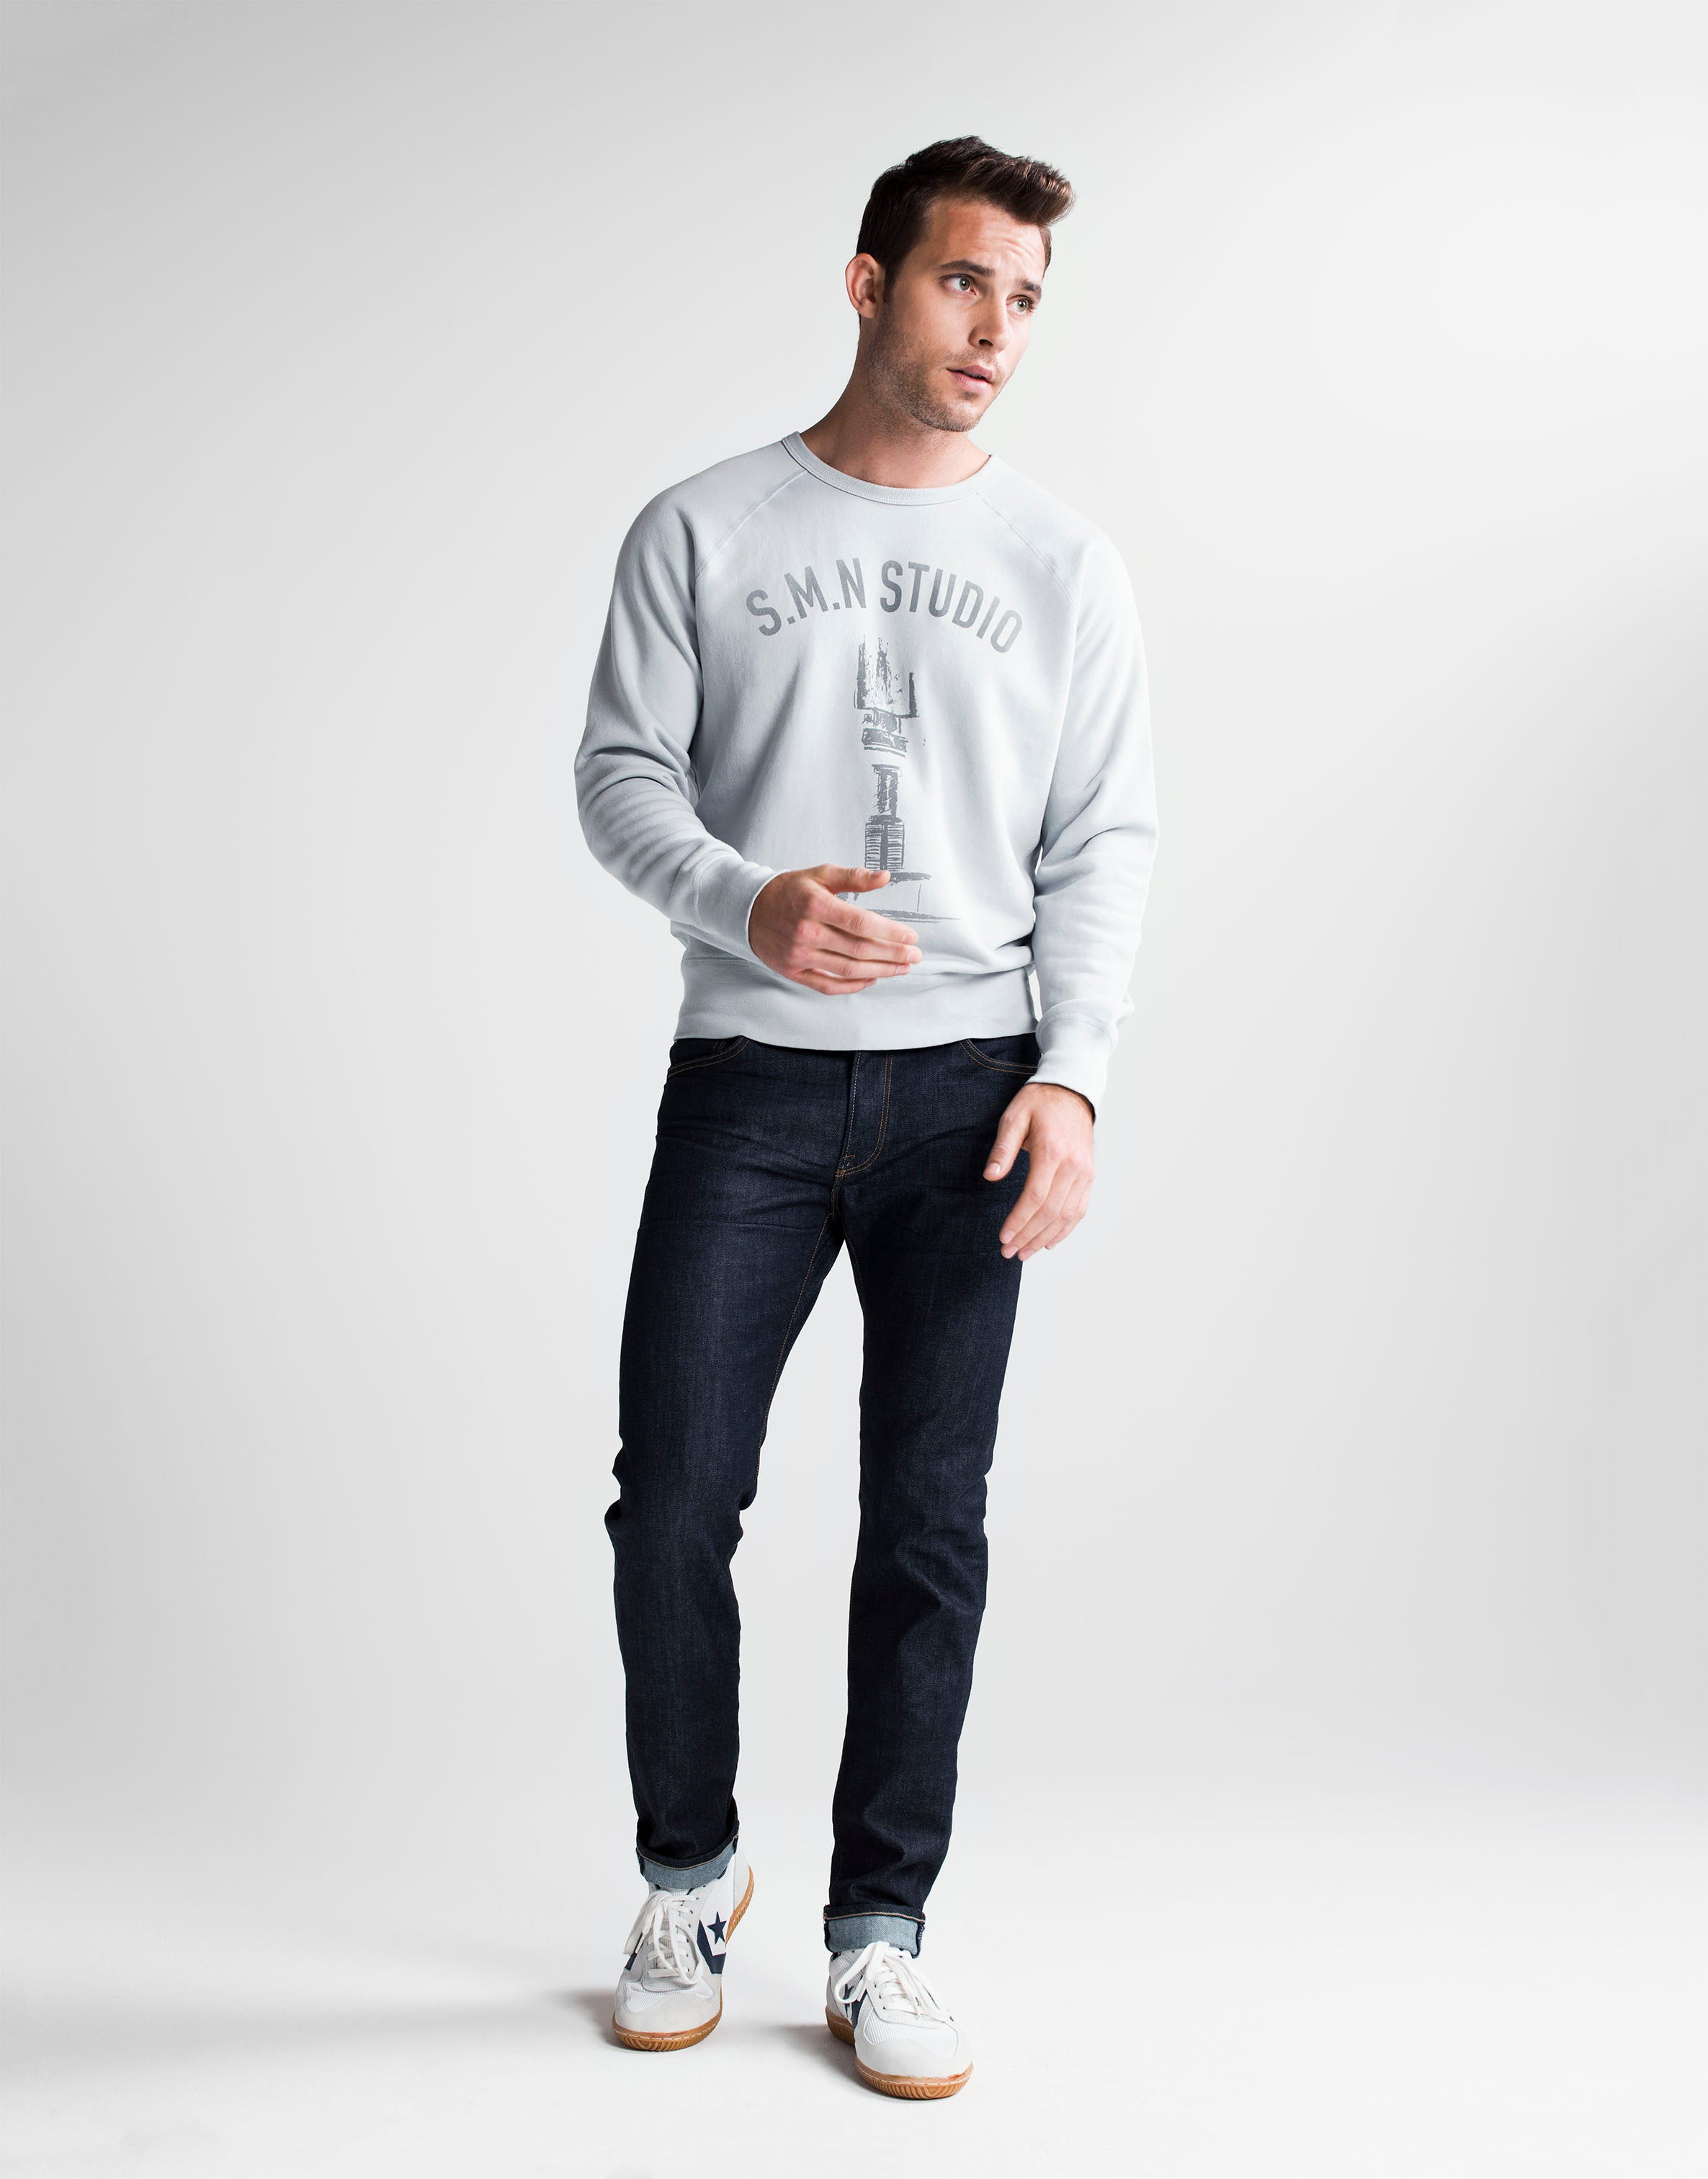 Brown haired athletic model standing wearing S.M.N Studio's Bond in Bravo jeans and S.M.N Studio printed grey crewneck sweatshirt. The jeans are a slim straight raw denim washed jean.